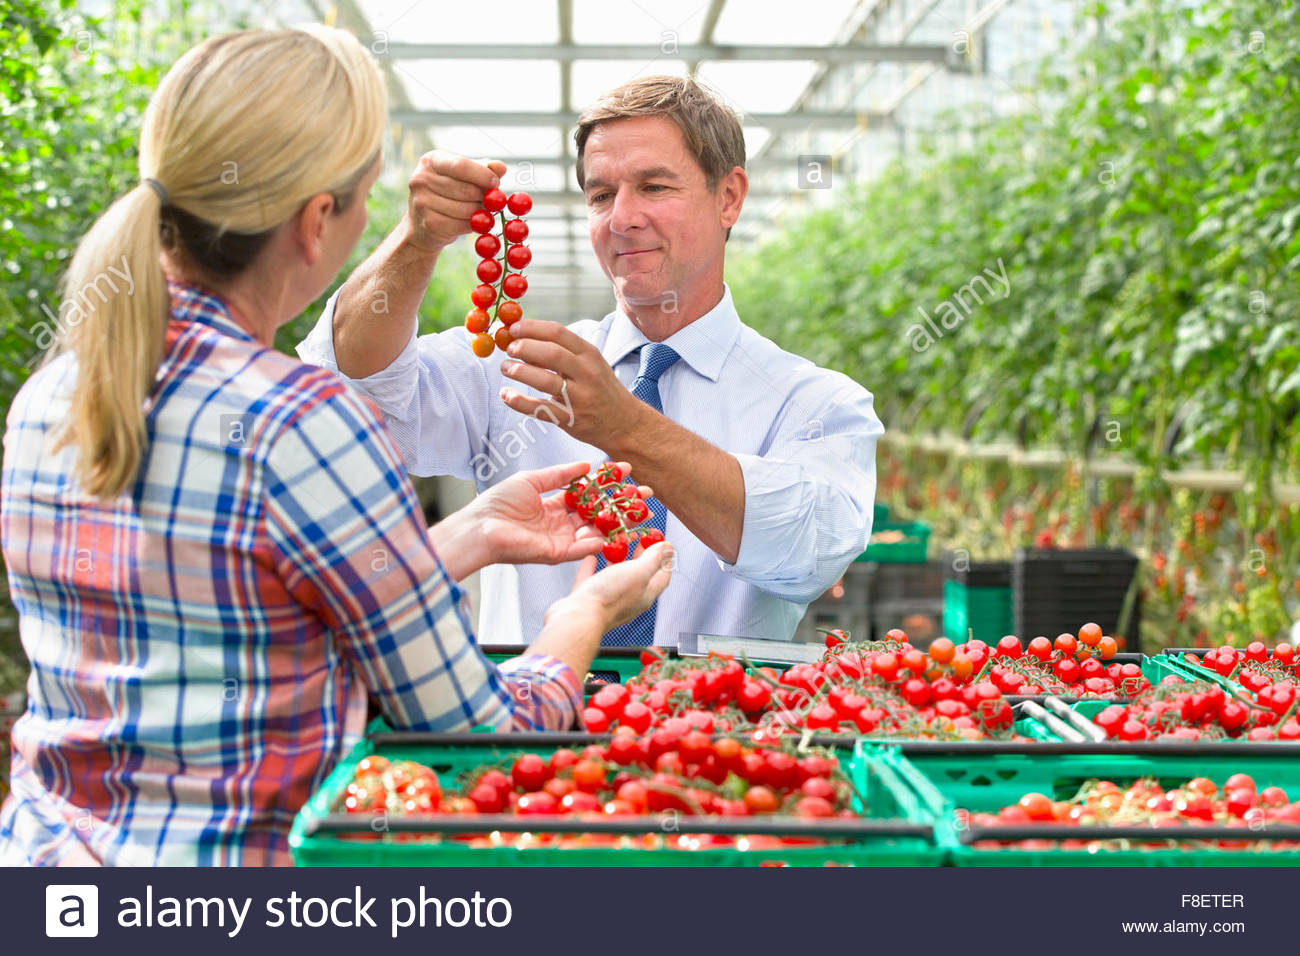 Growers inspecting ripe red vine tomatoes in crates in greenhouse - Stock Image